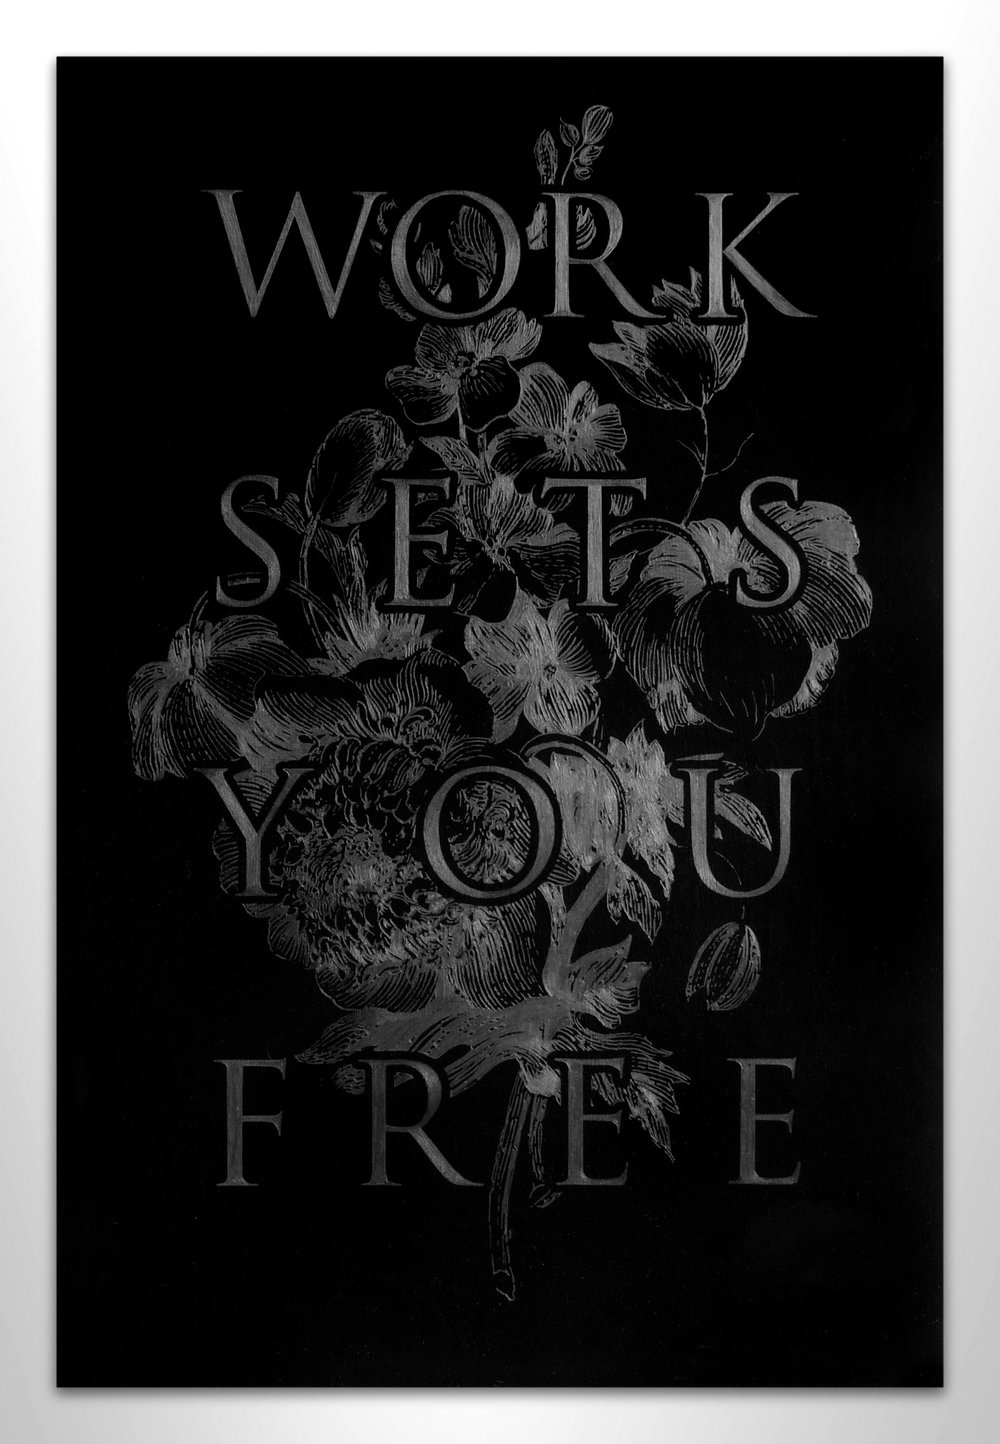 32_work_sets_you_free.jpg